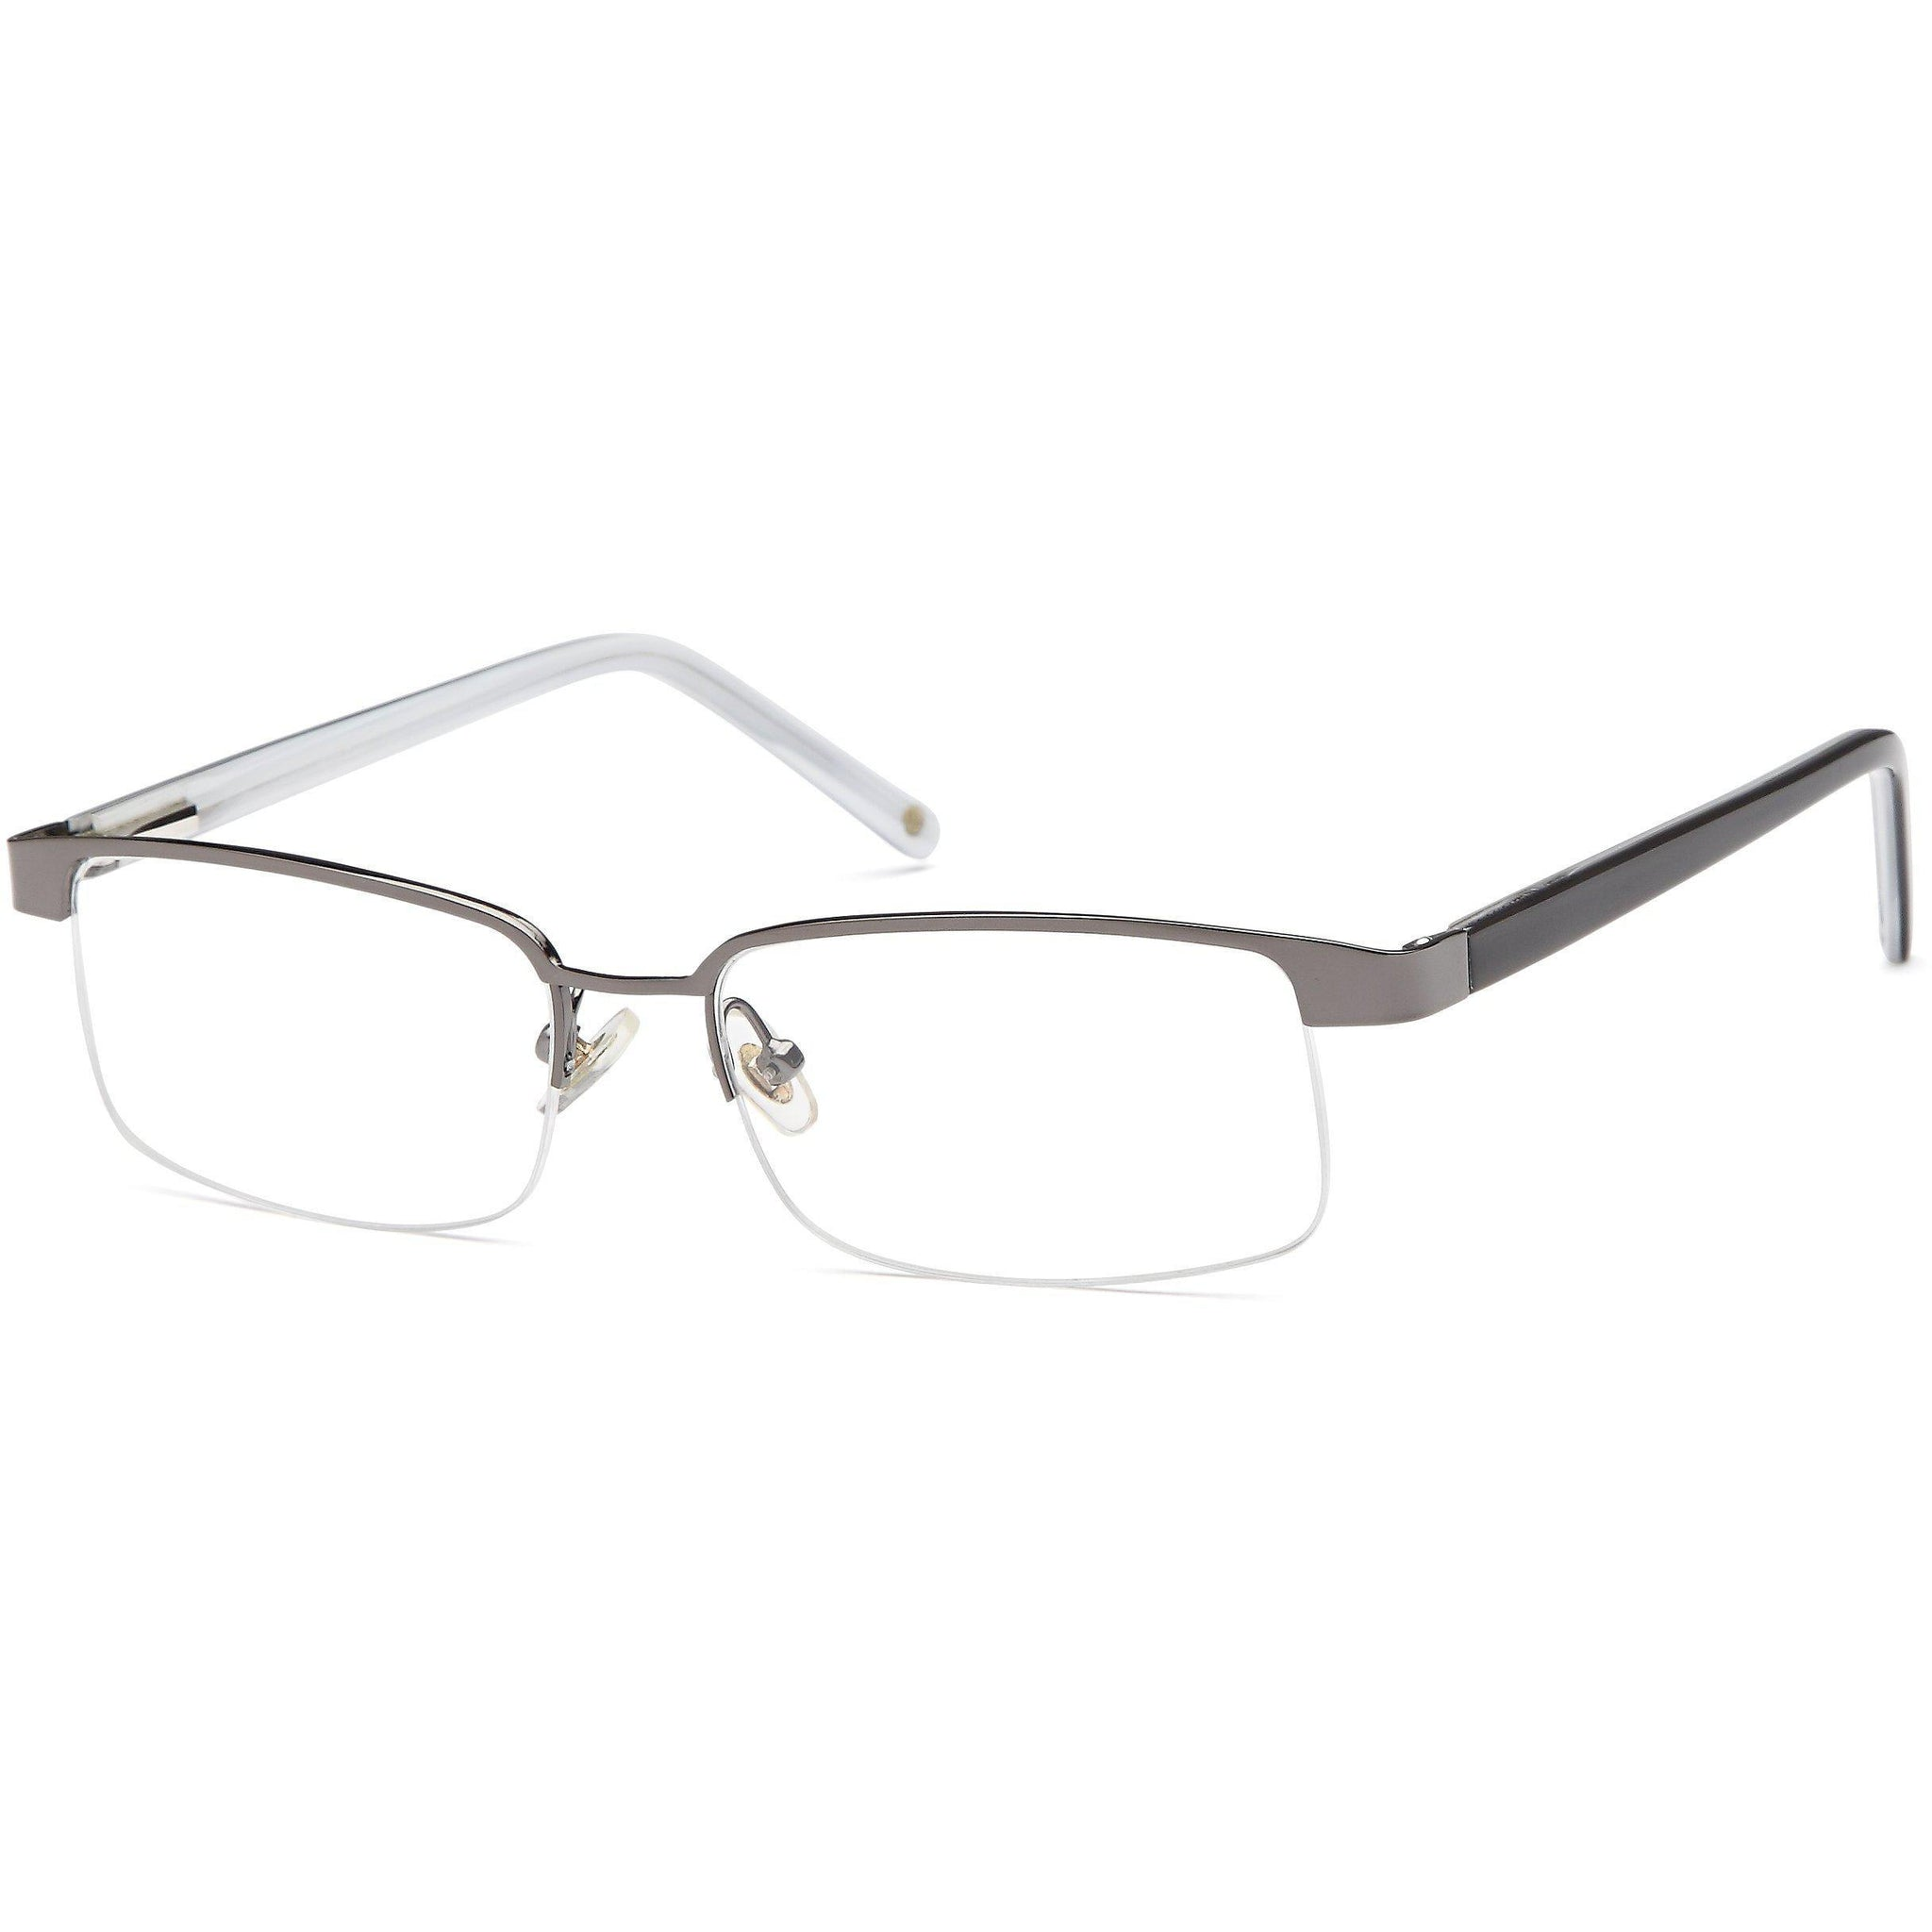 Classics Prescription Glasses VP 111 Frames